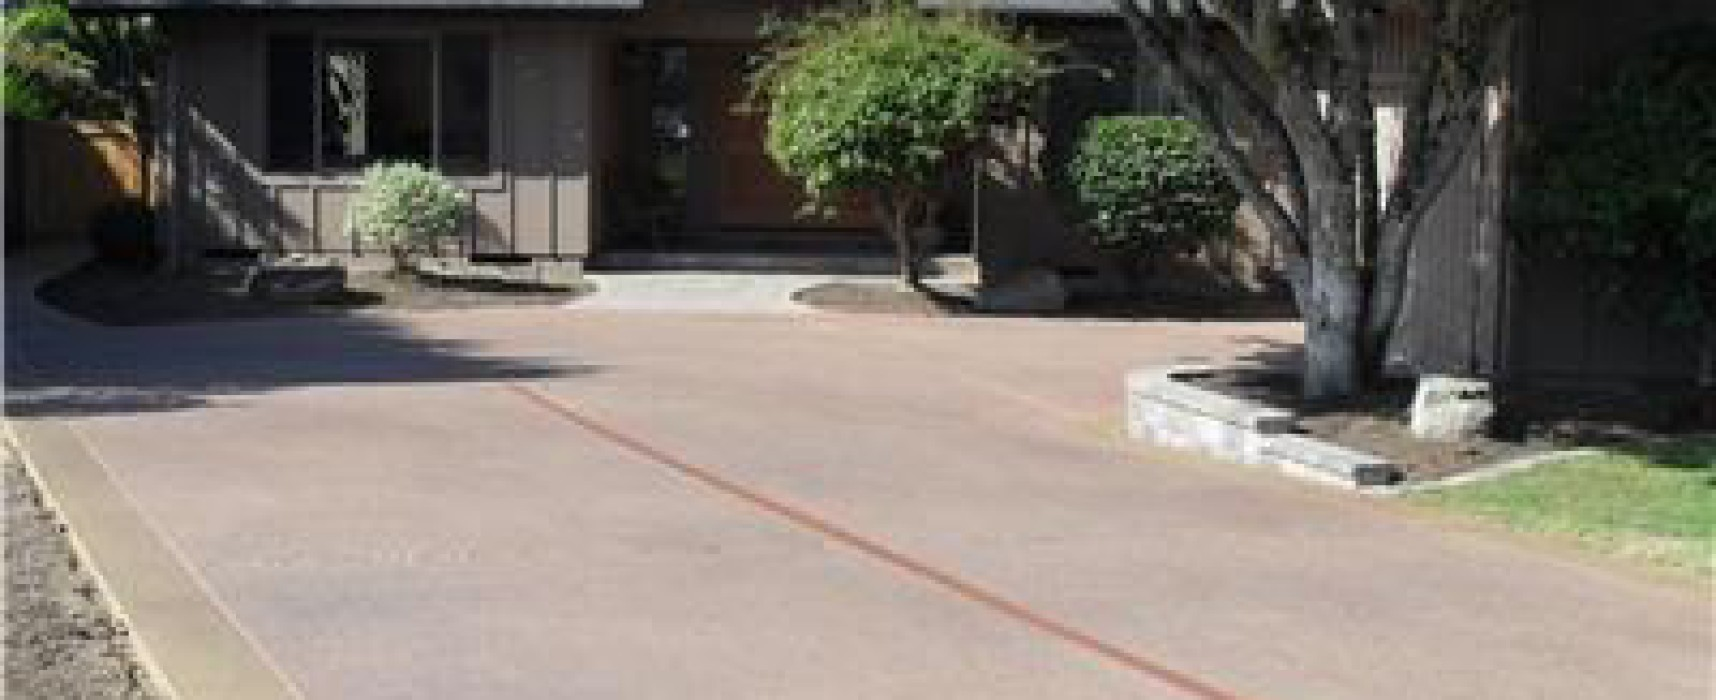 5 Simple Steps For Concrete Driveway Resurfacing